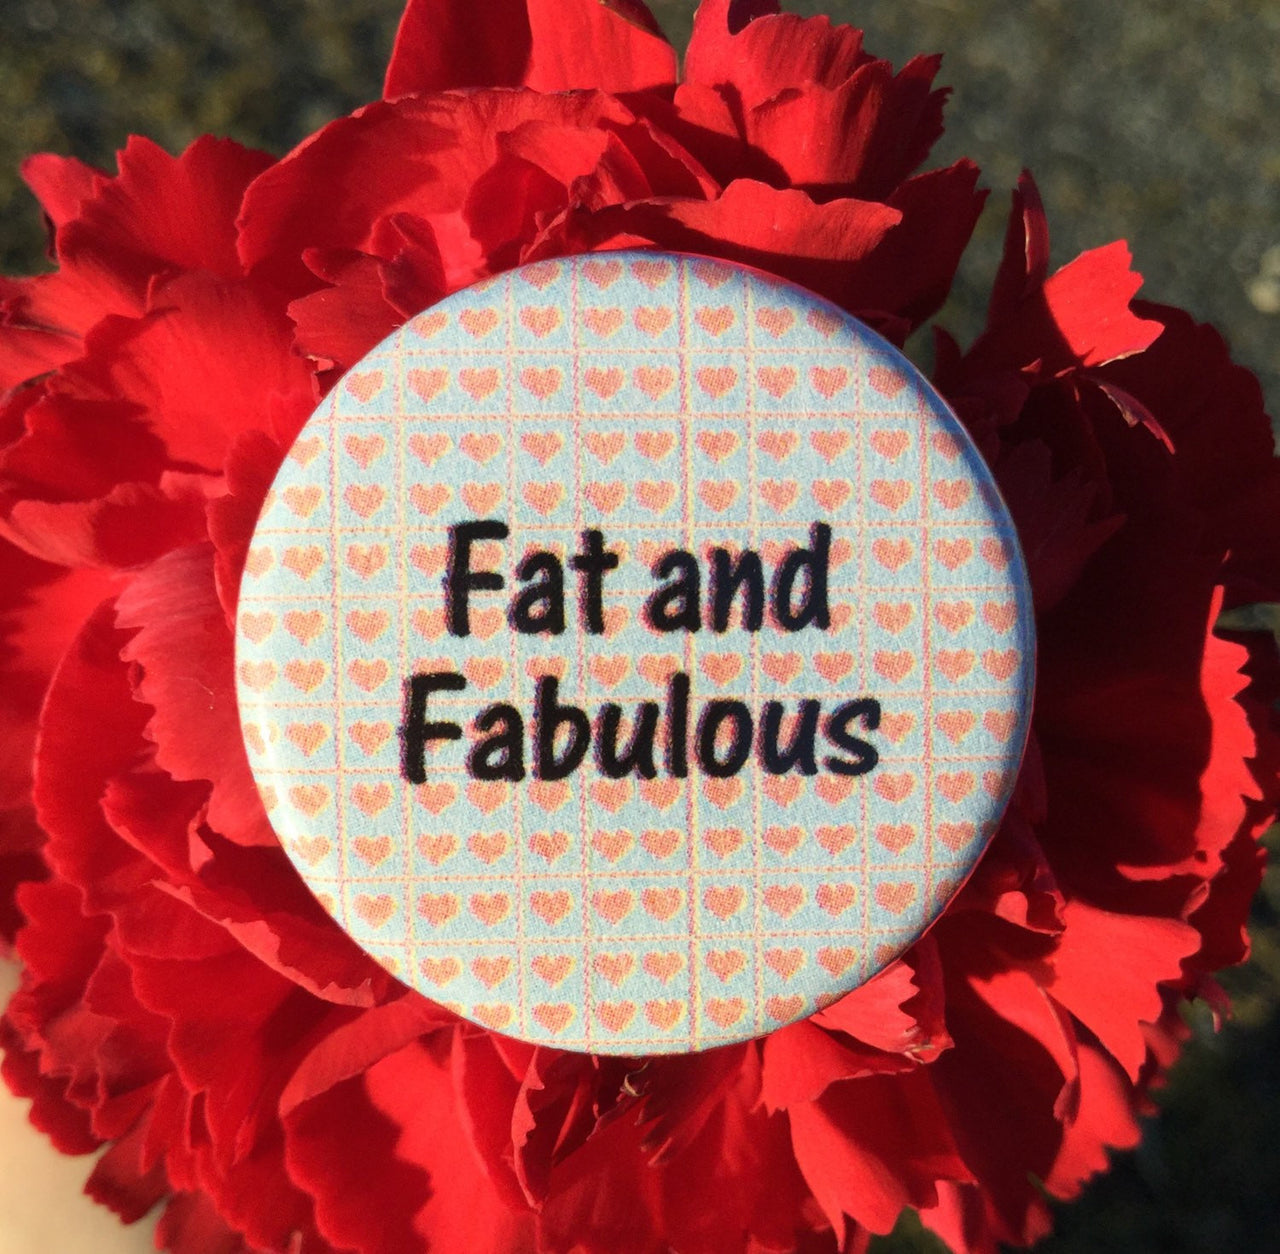 Fat and fabulous / Body positivity button - Radical Buttons